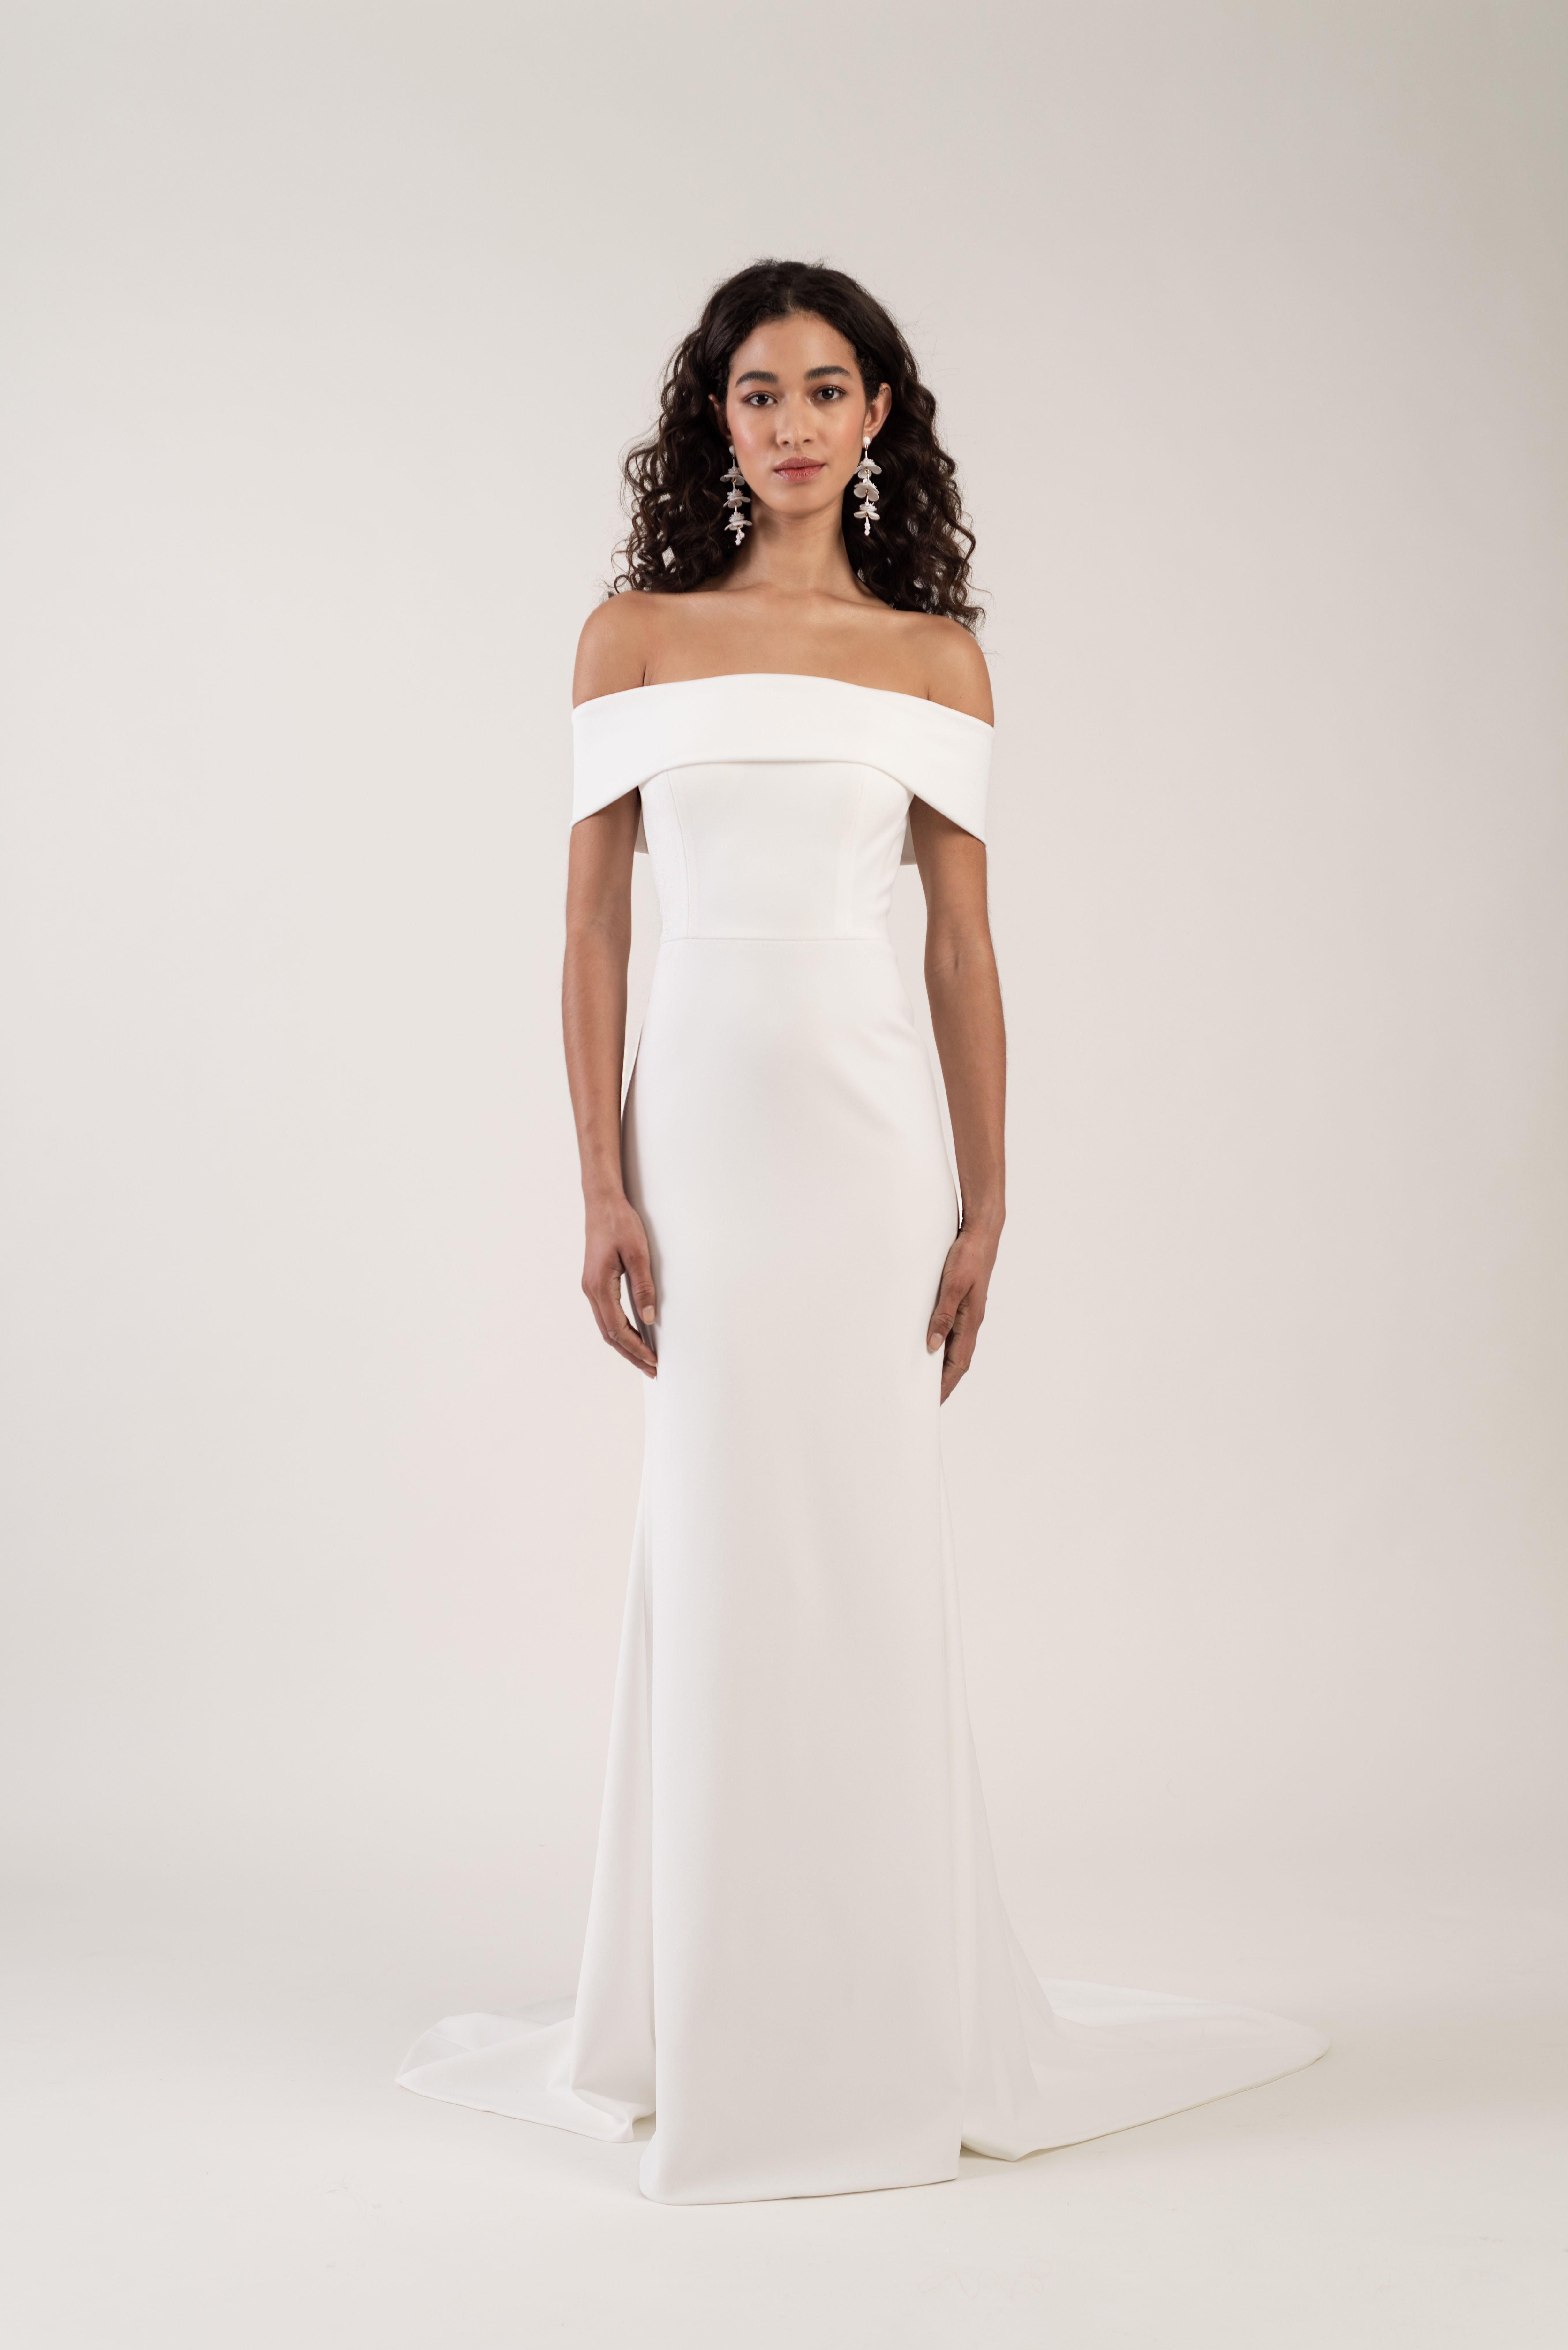 off-the-shoulder straight across train sheath wedding dress Jenny by Jenny Yoo Spring 2020